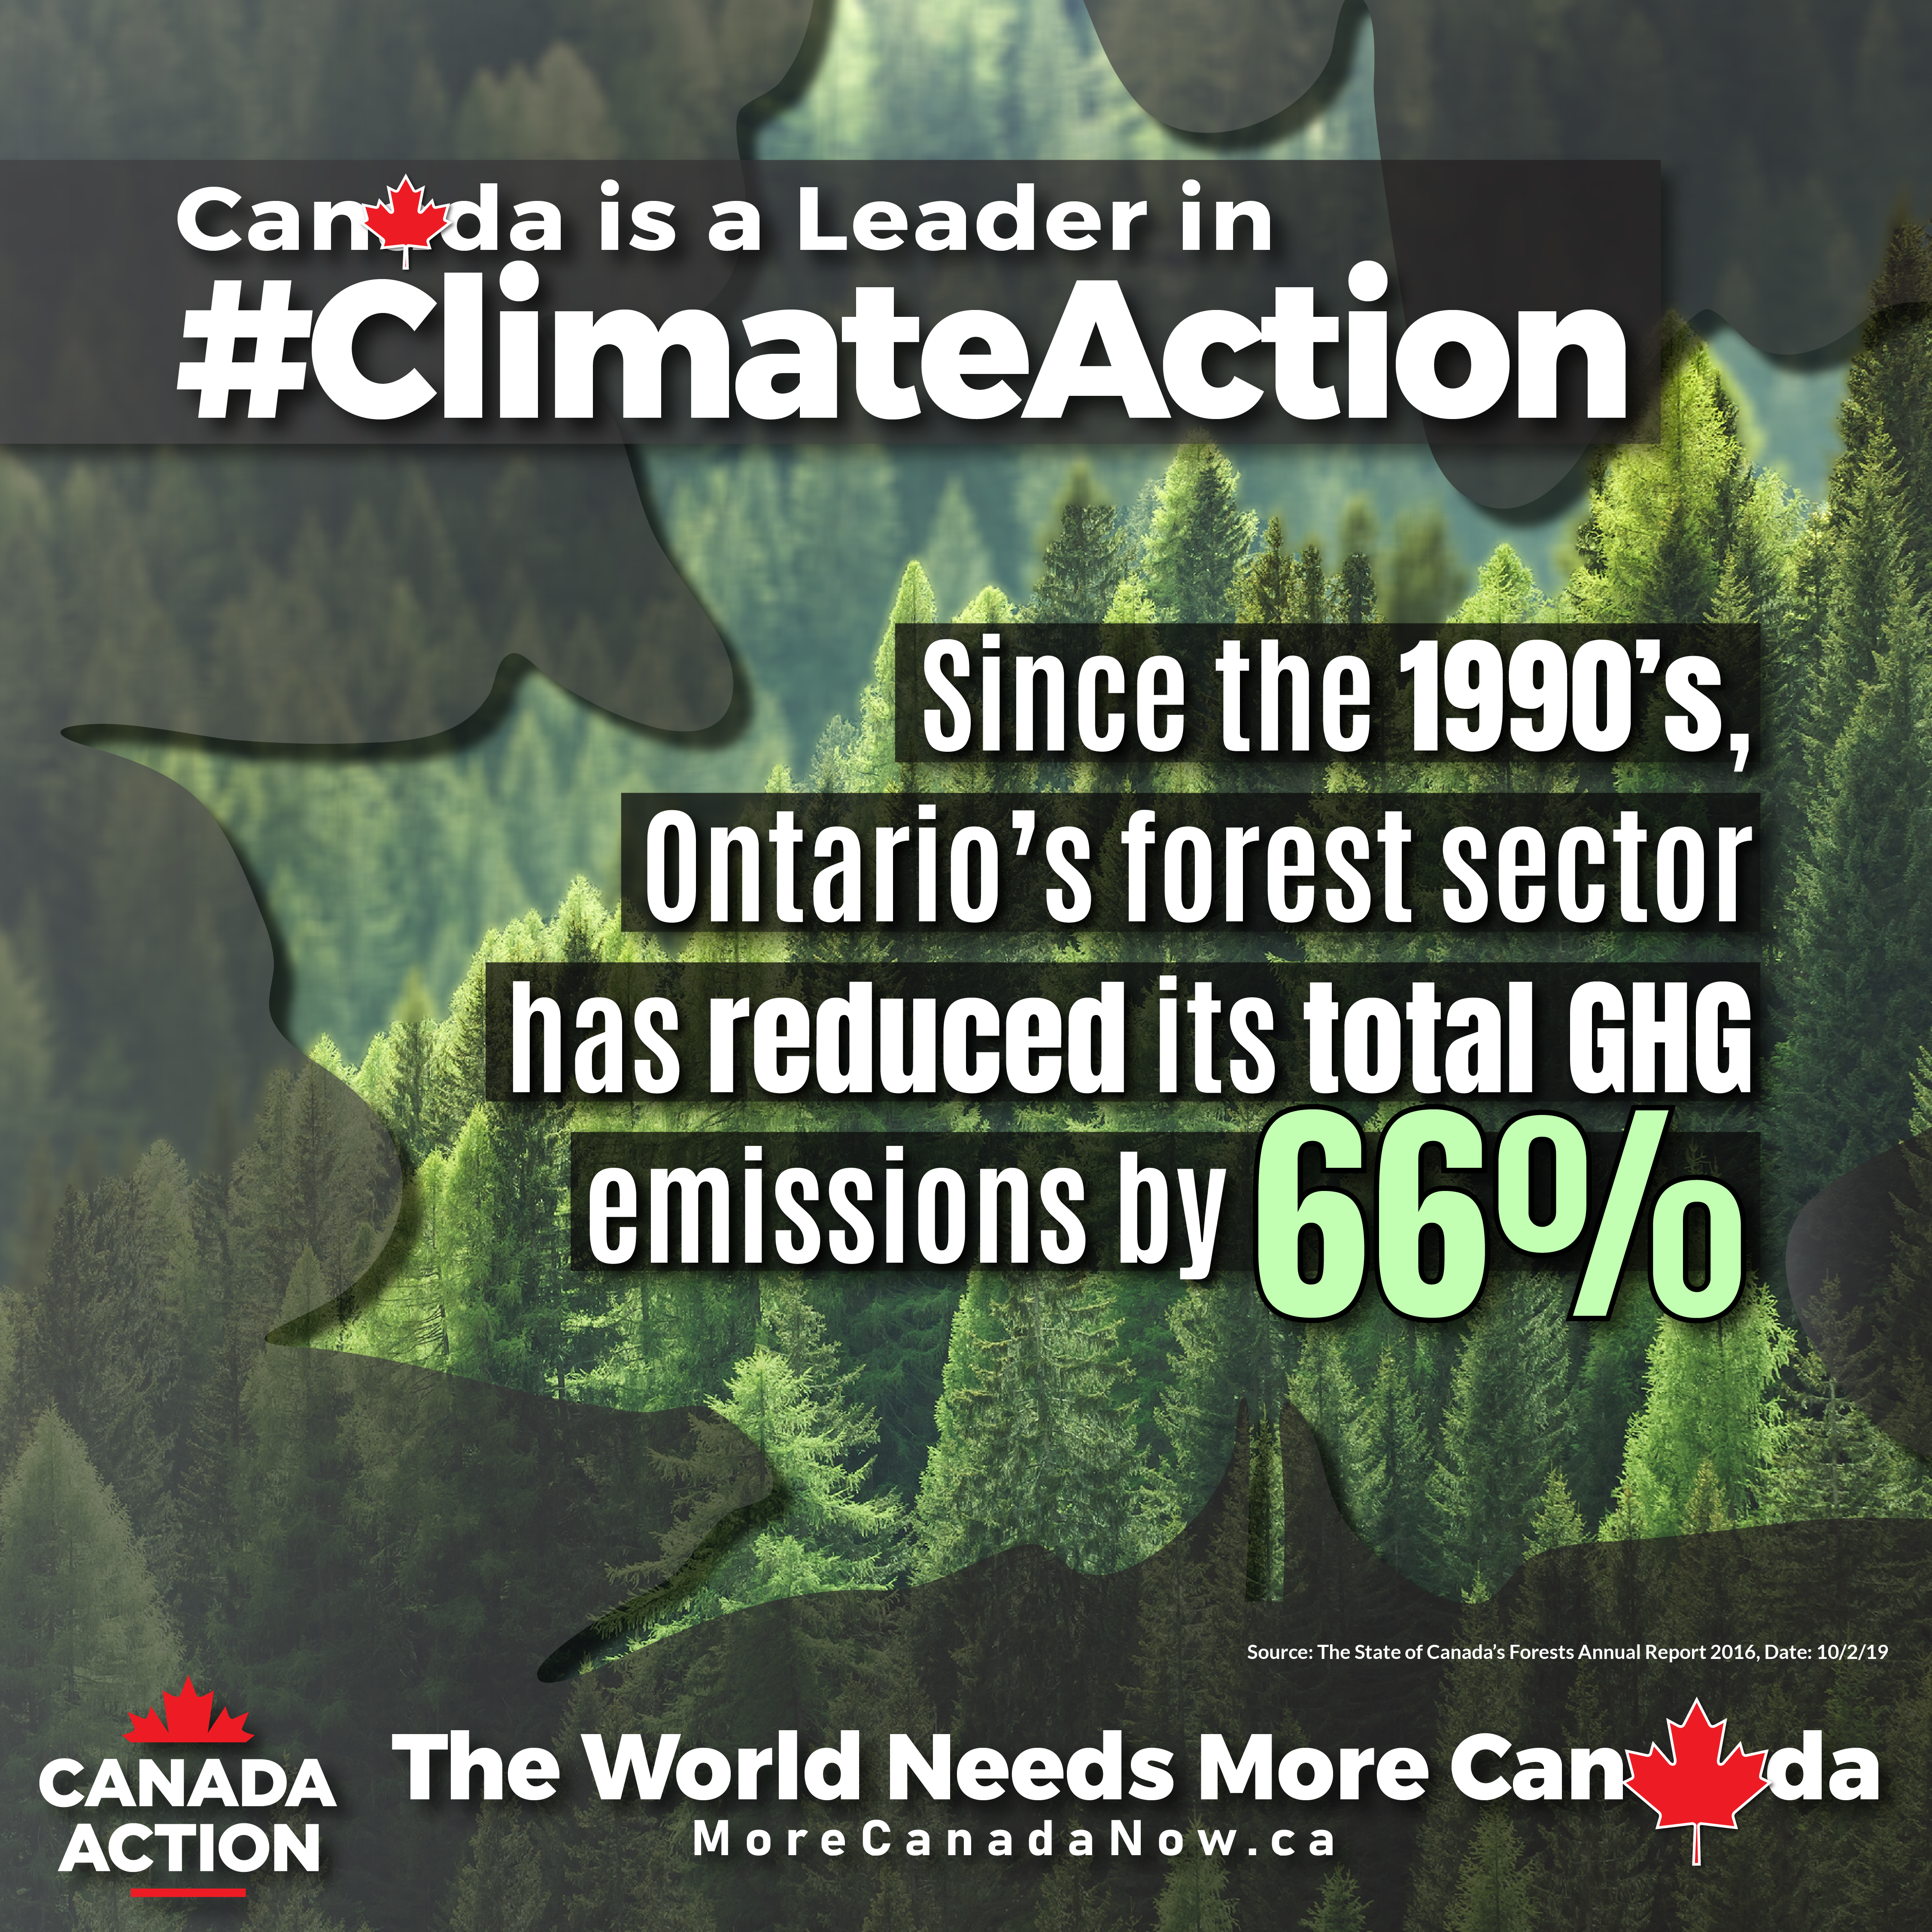 Ontario forest industry emissions, down by 66% since 1990s